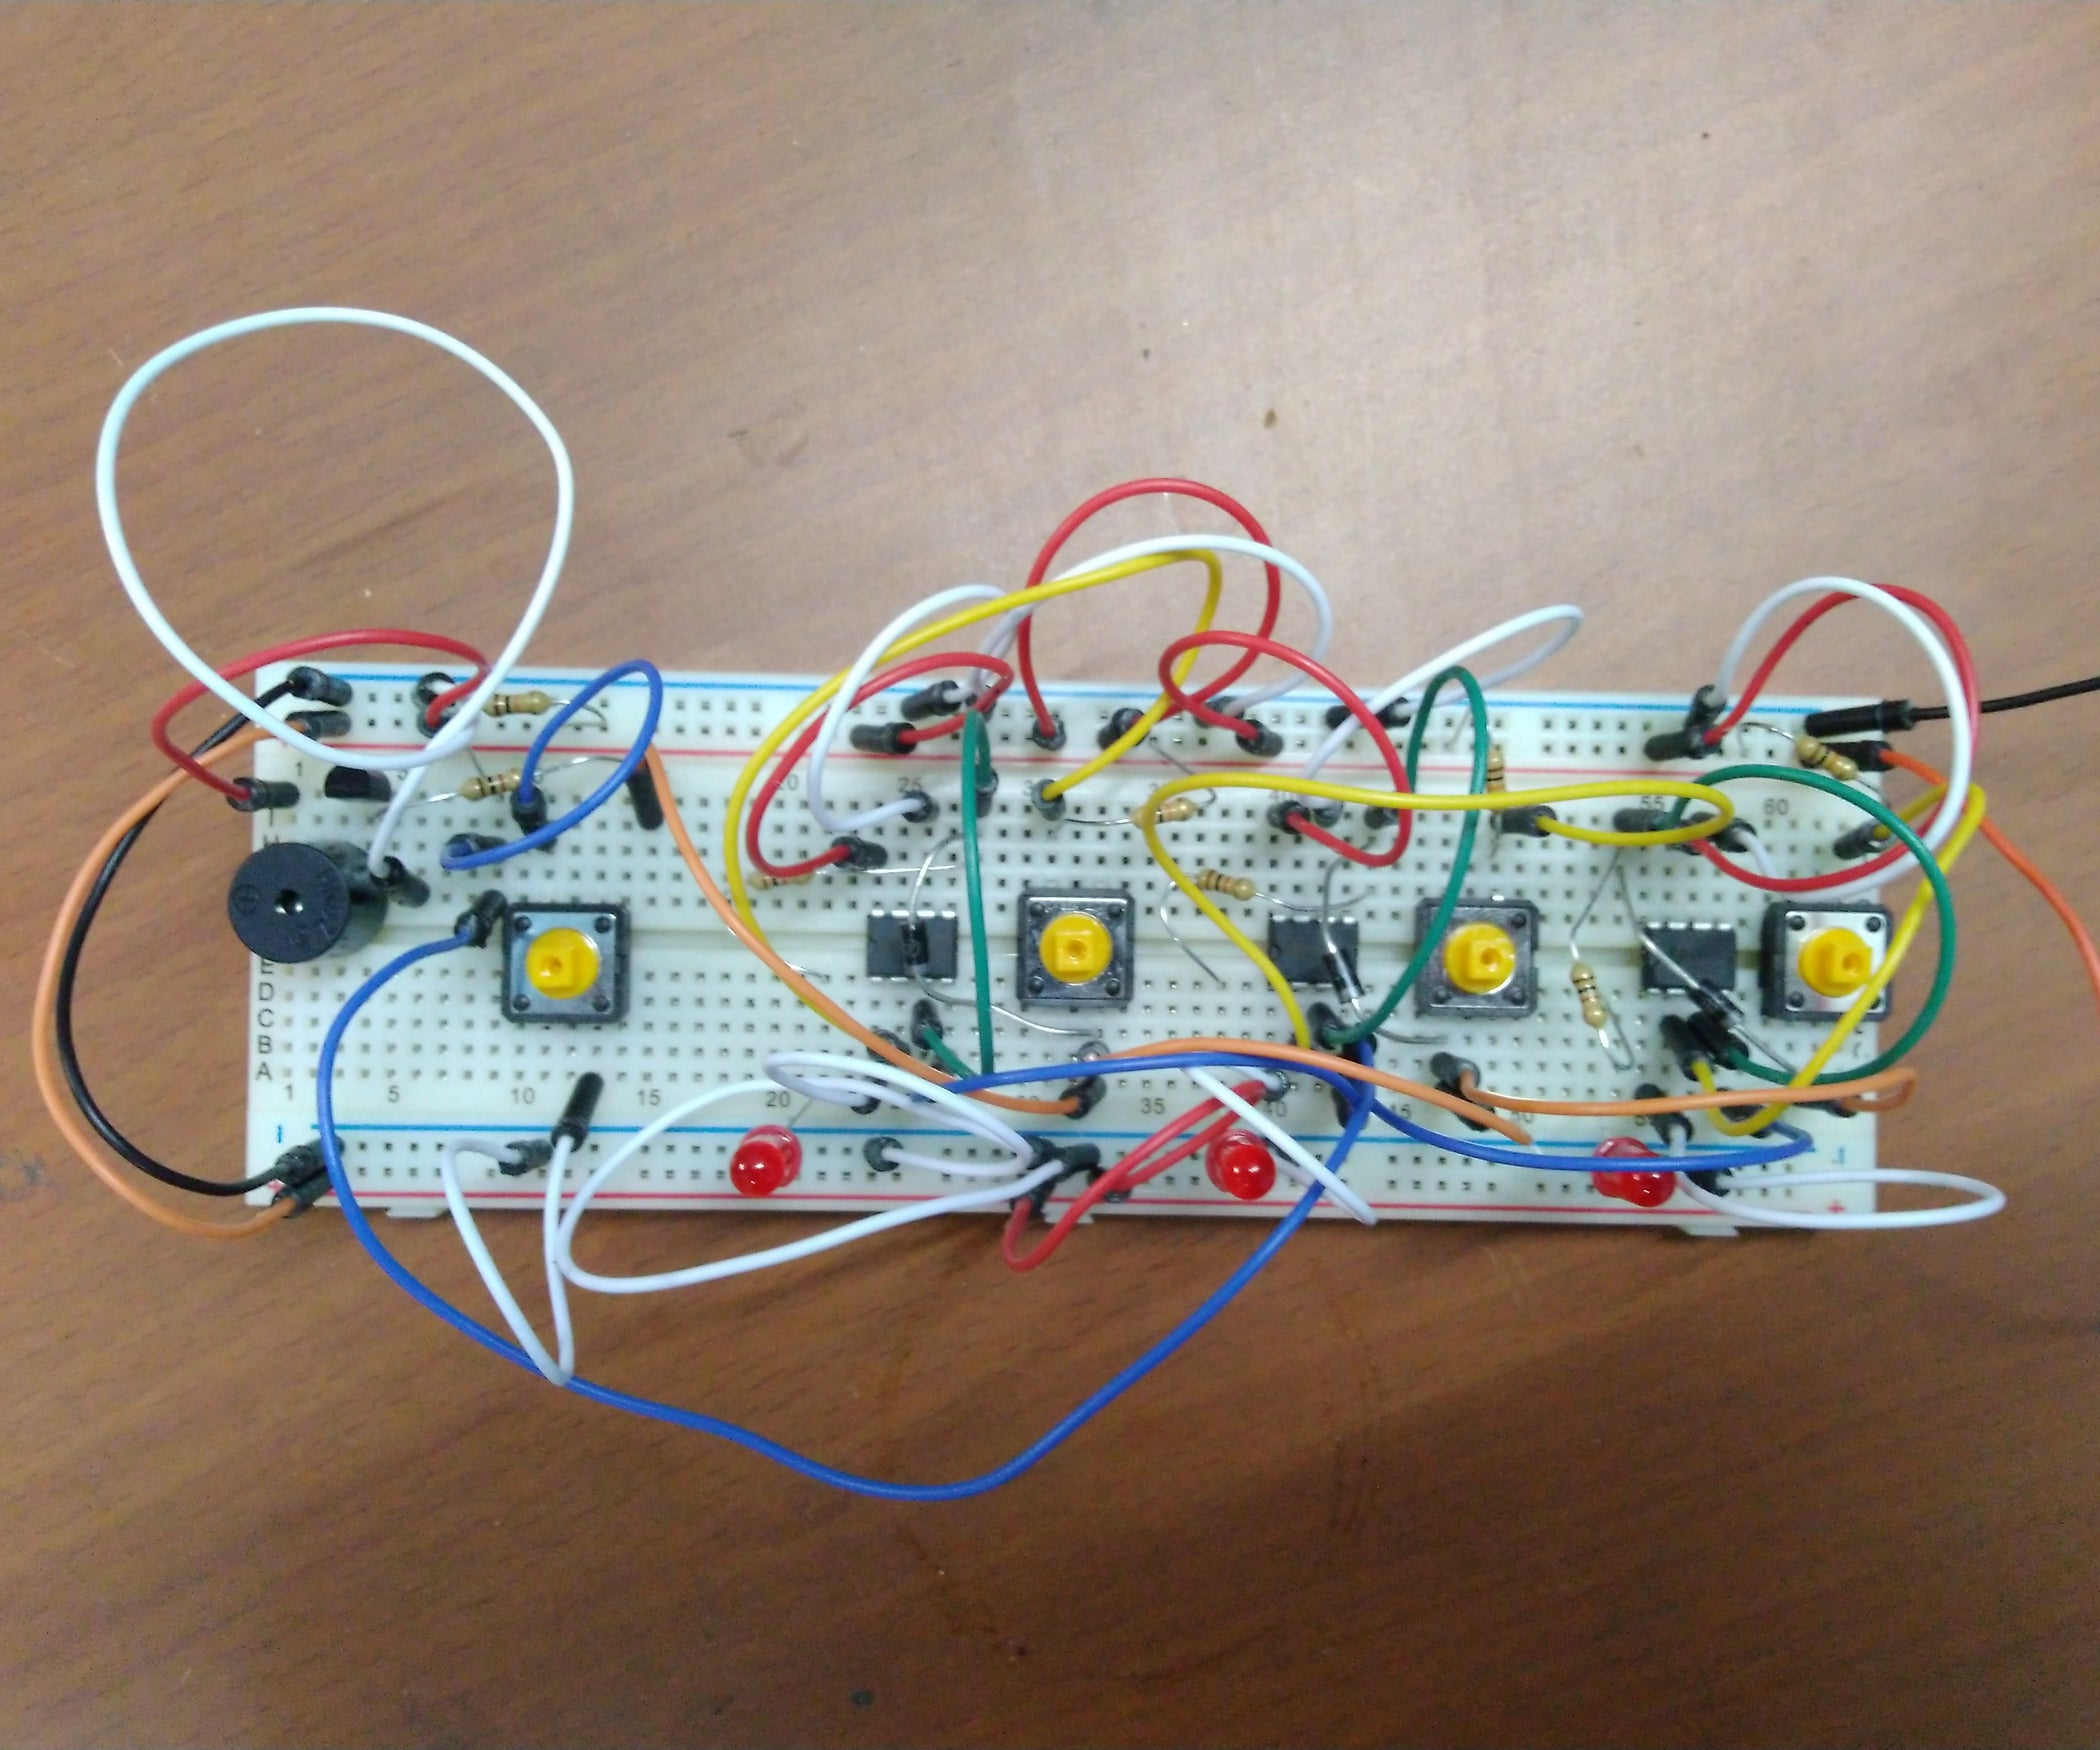 Quiz Buzzer Using 555 Timer Ic 4 Steps Operation Of Astable Multivibrator Mode